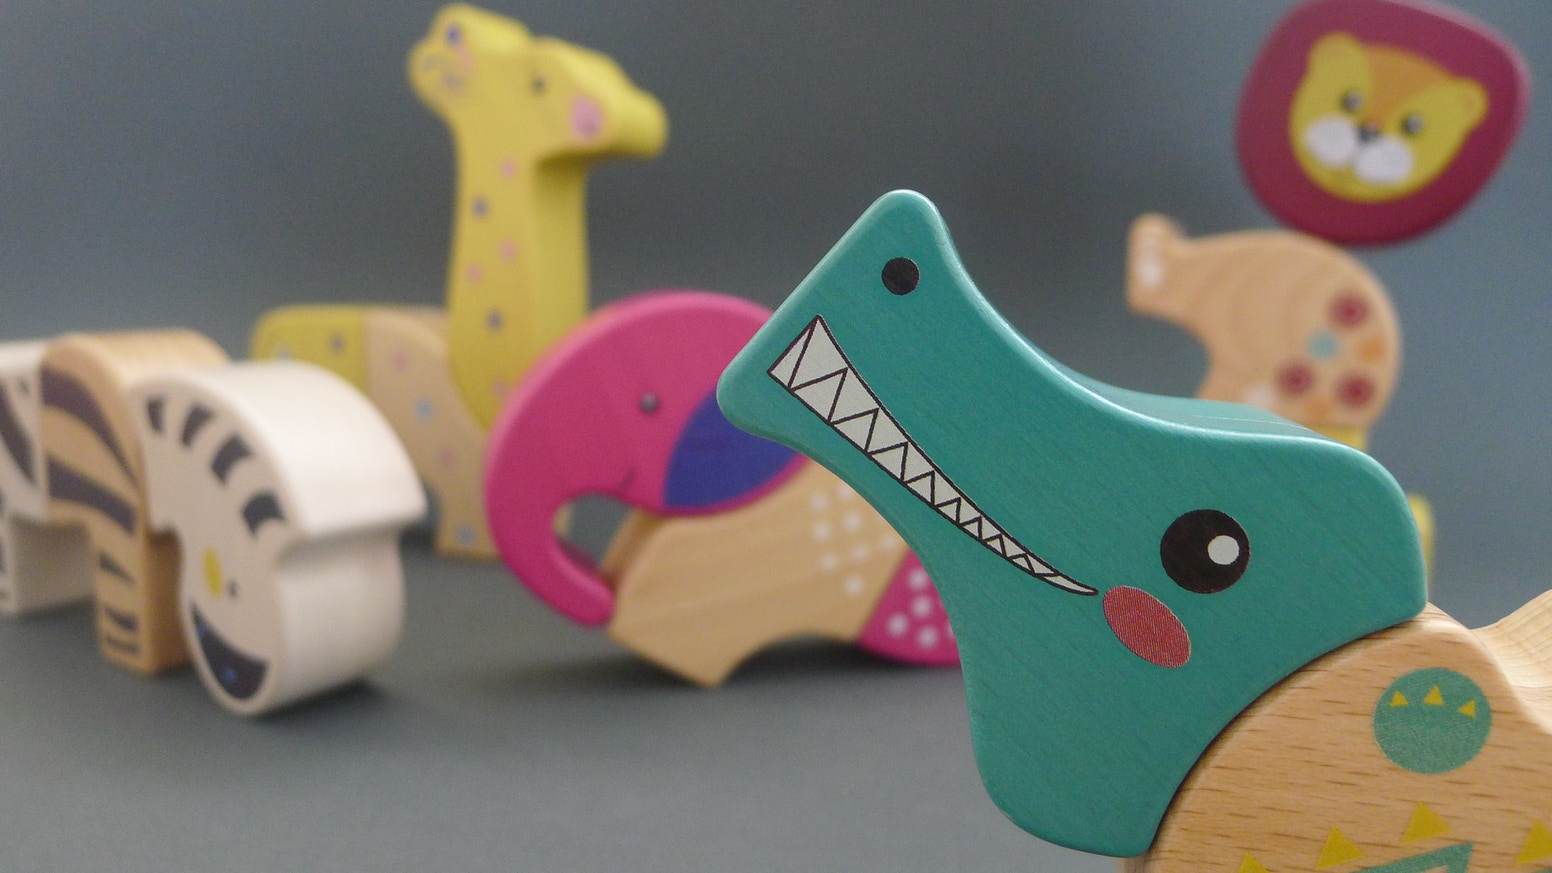 5 animals, each consisting of 3 magnetic wooden blocks = multiple fun assembly solutions & endless play combinations.